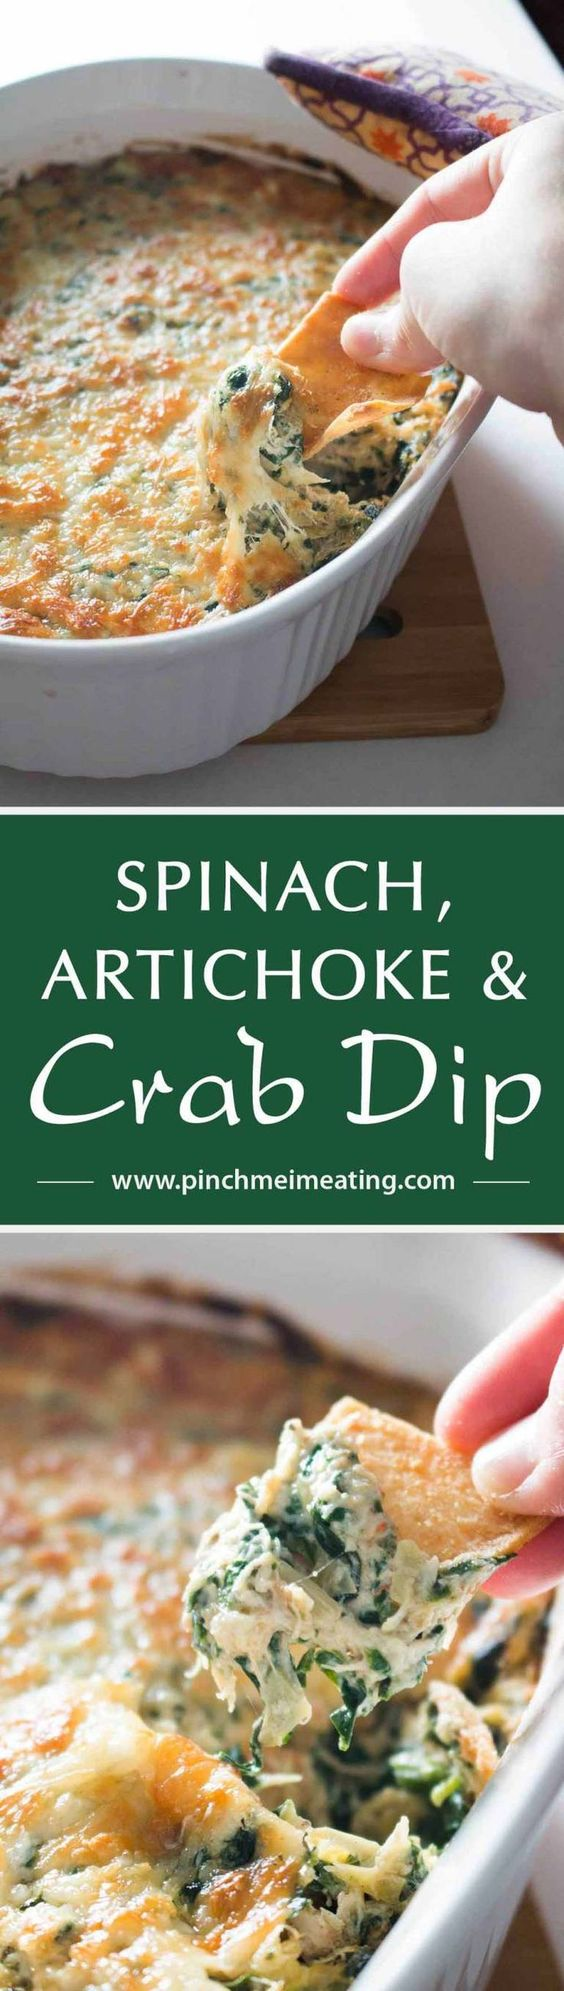 Baked Spinach, Artichoke, and Crab Dip | Recipe | Crab Dip, Crabs and ...